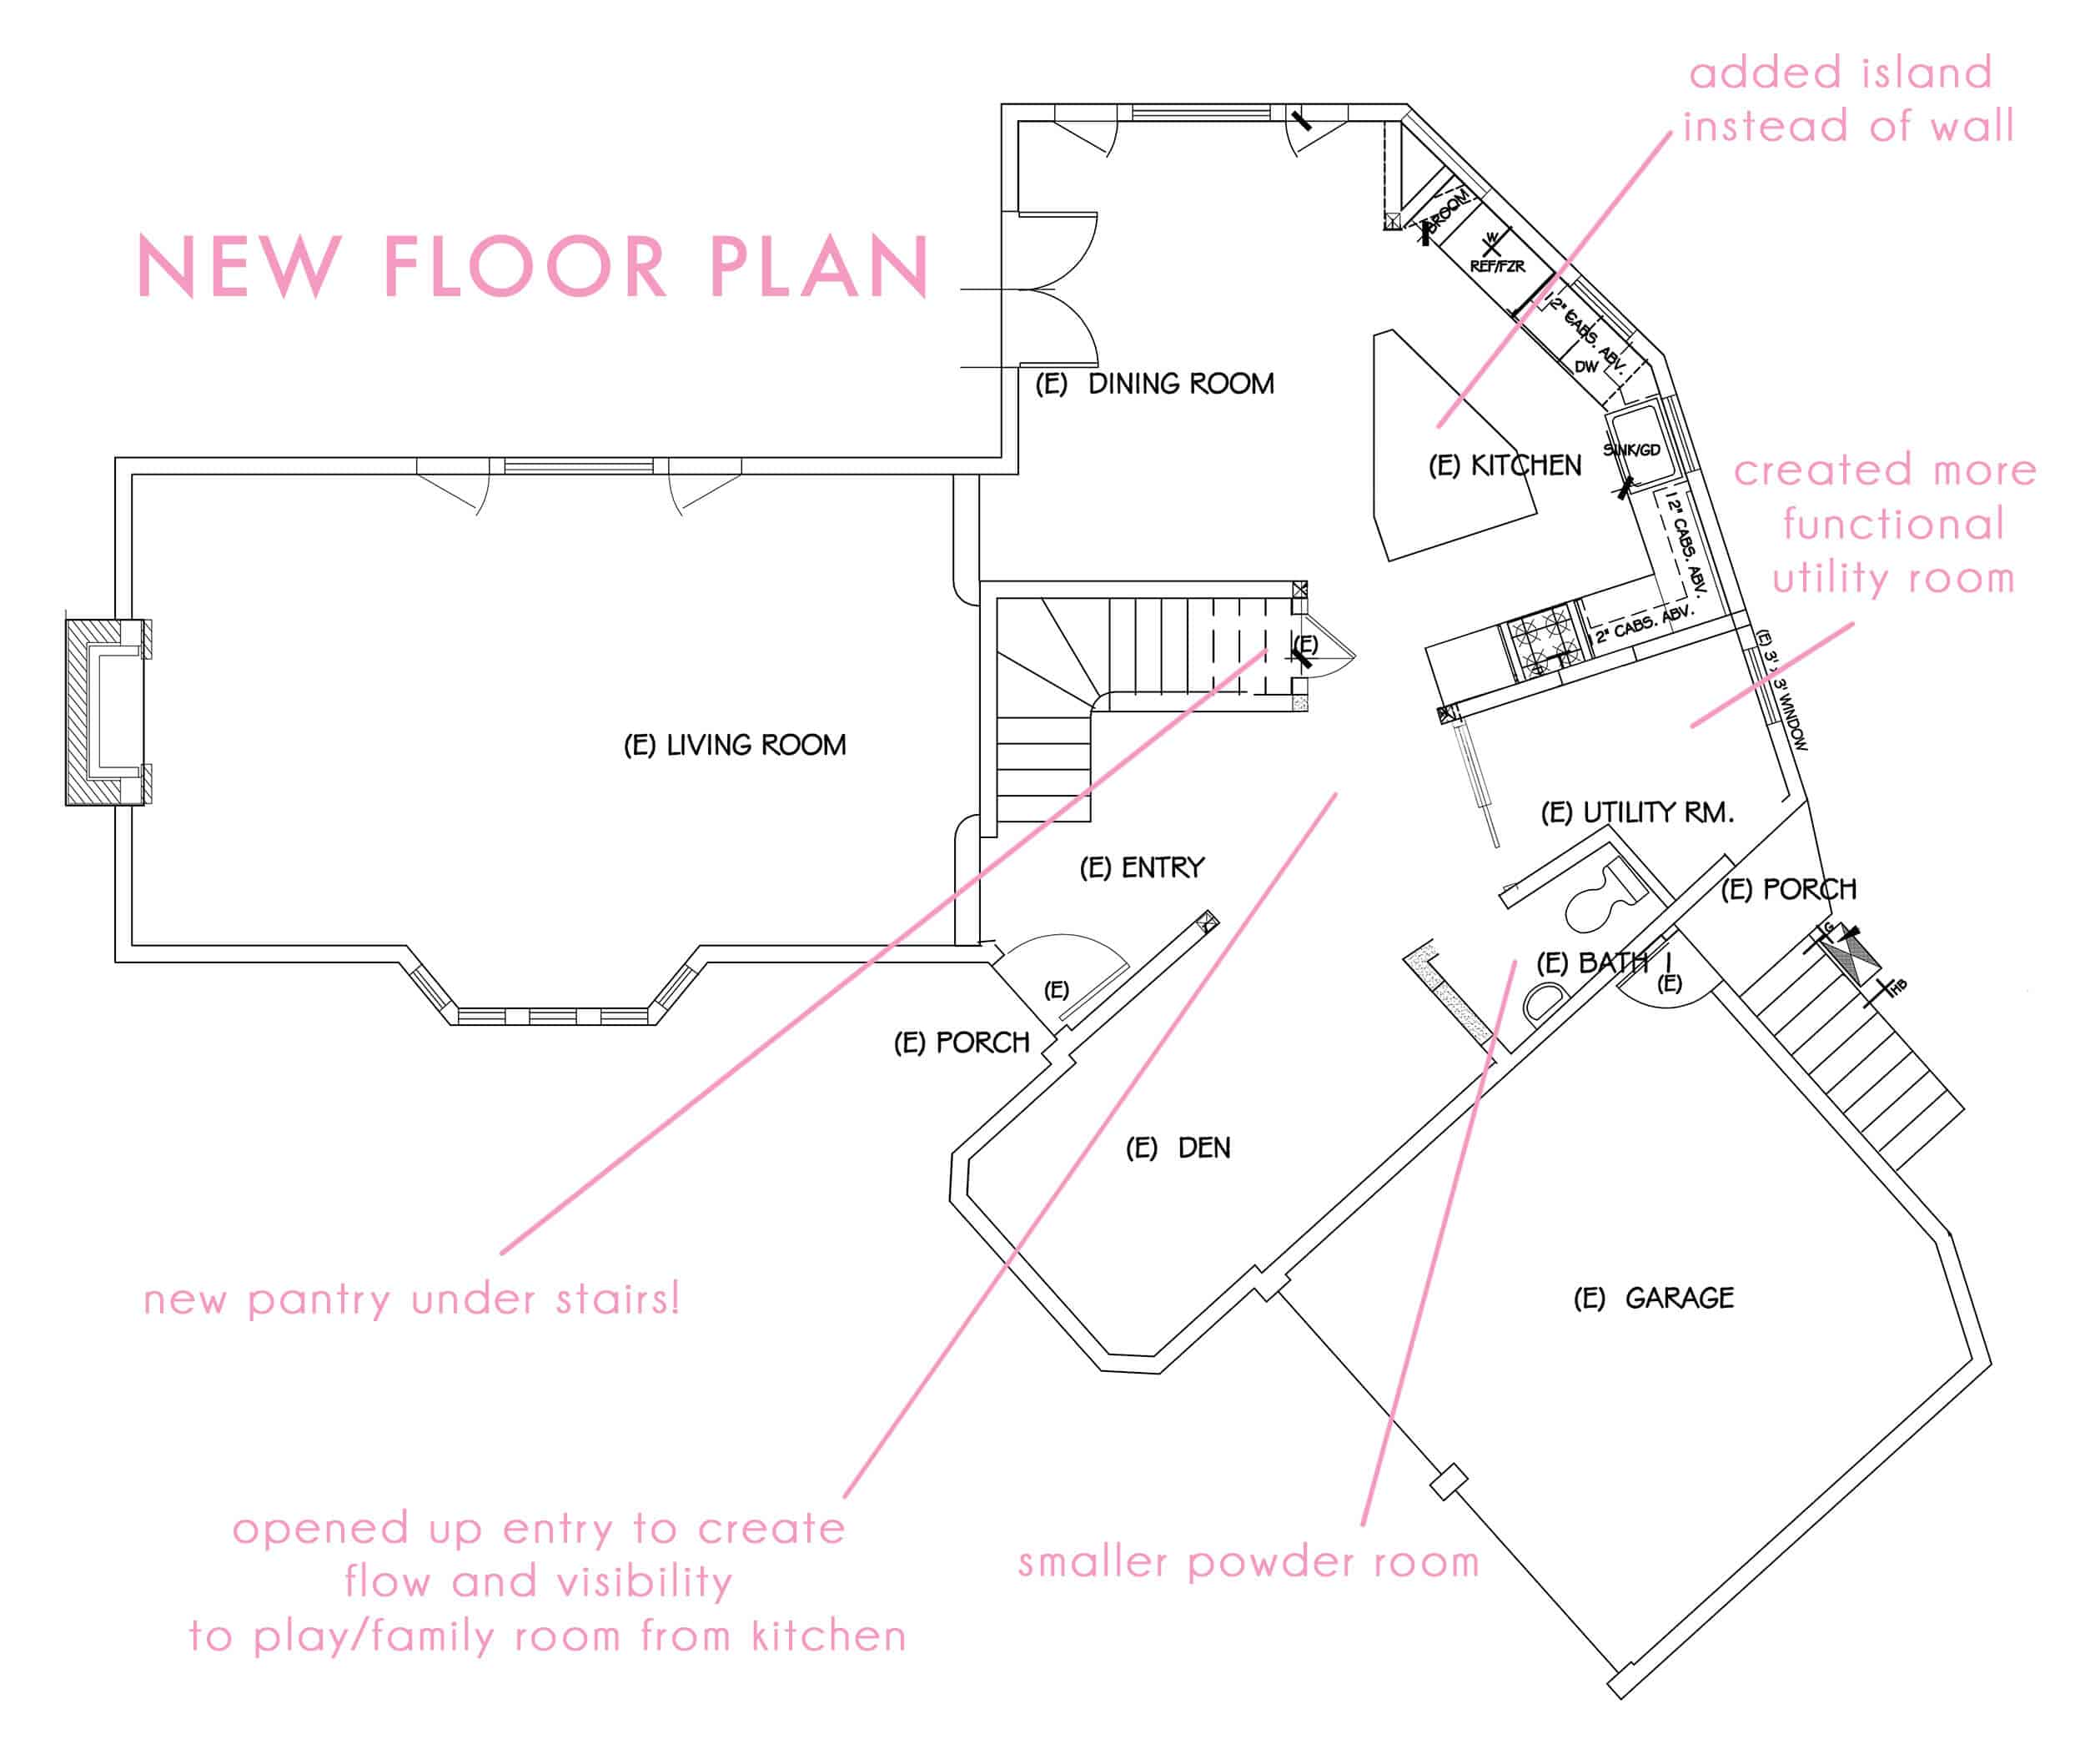 original_floor-plan_revised-floor-plan_new-floor-plan_with-text-overlay